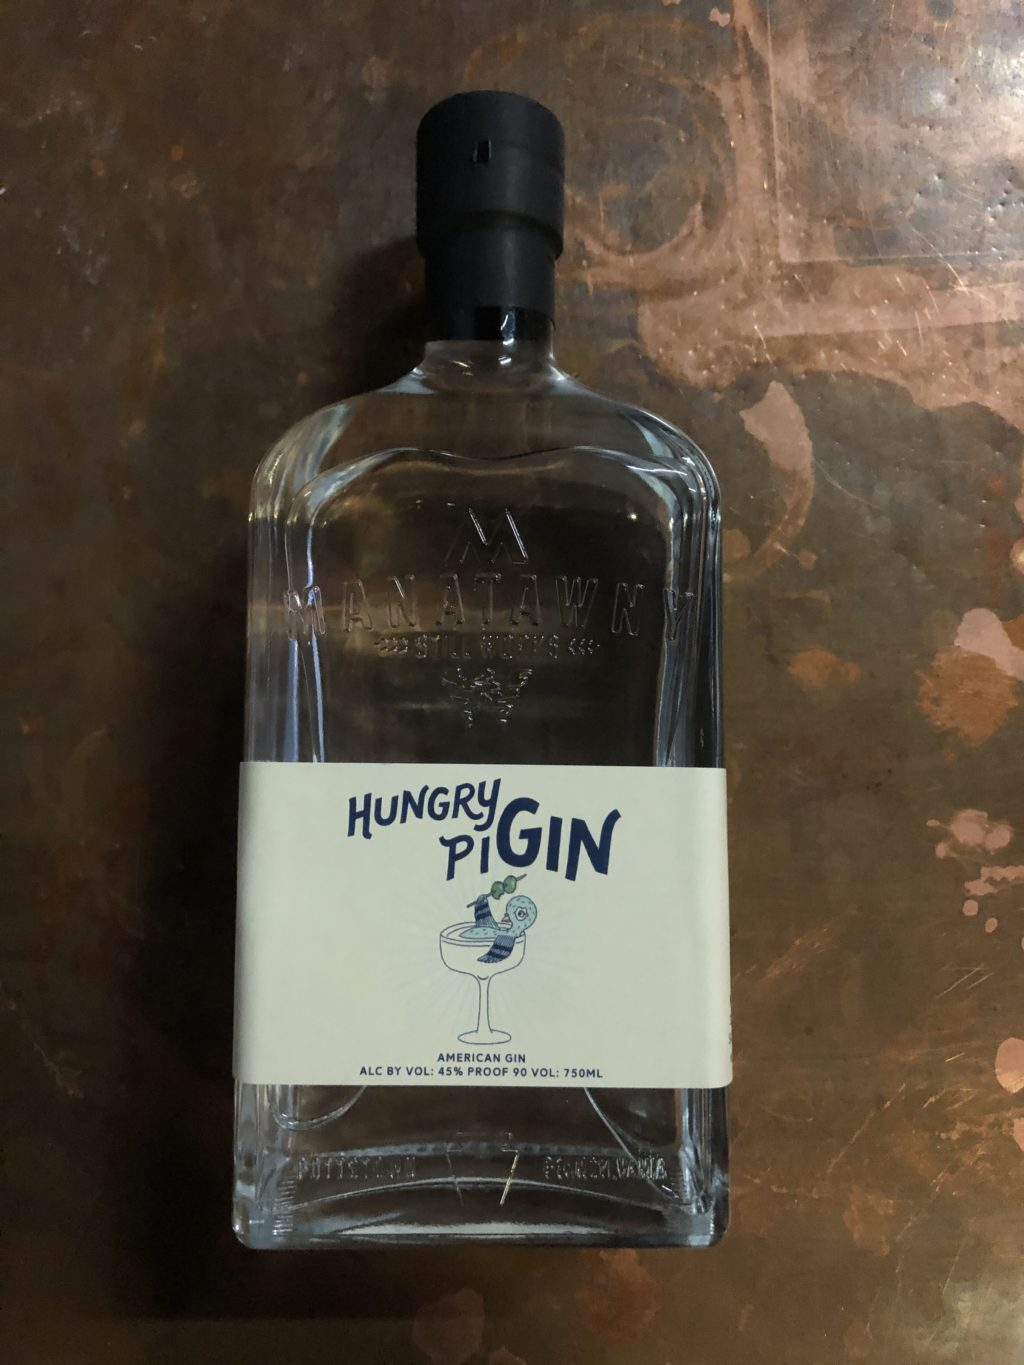 East Passyunk Avenue's Manatawny Still Works and Positively 4th Street's Hungry Pigeon Join Forces for Good Gin